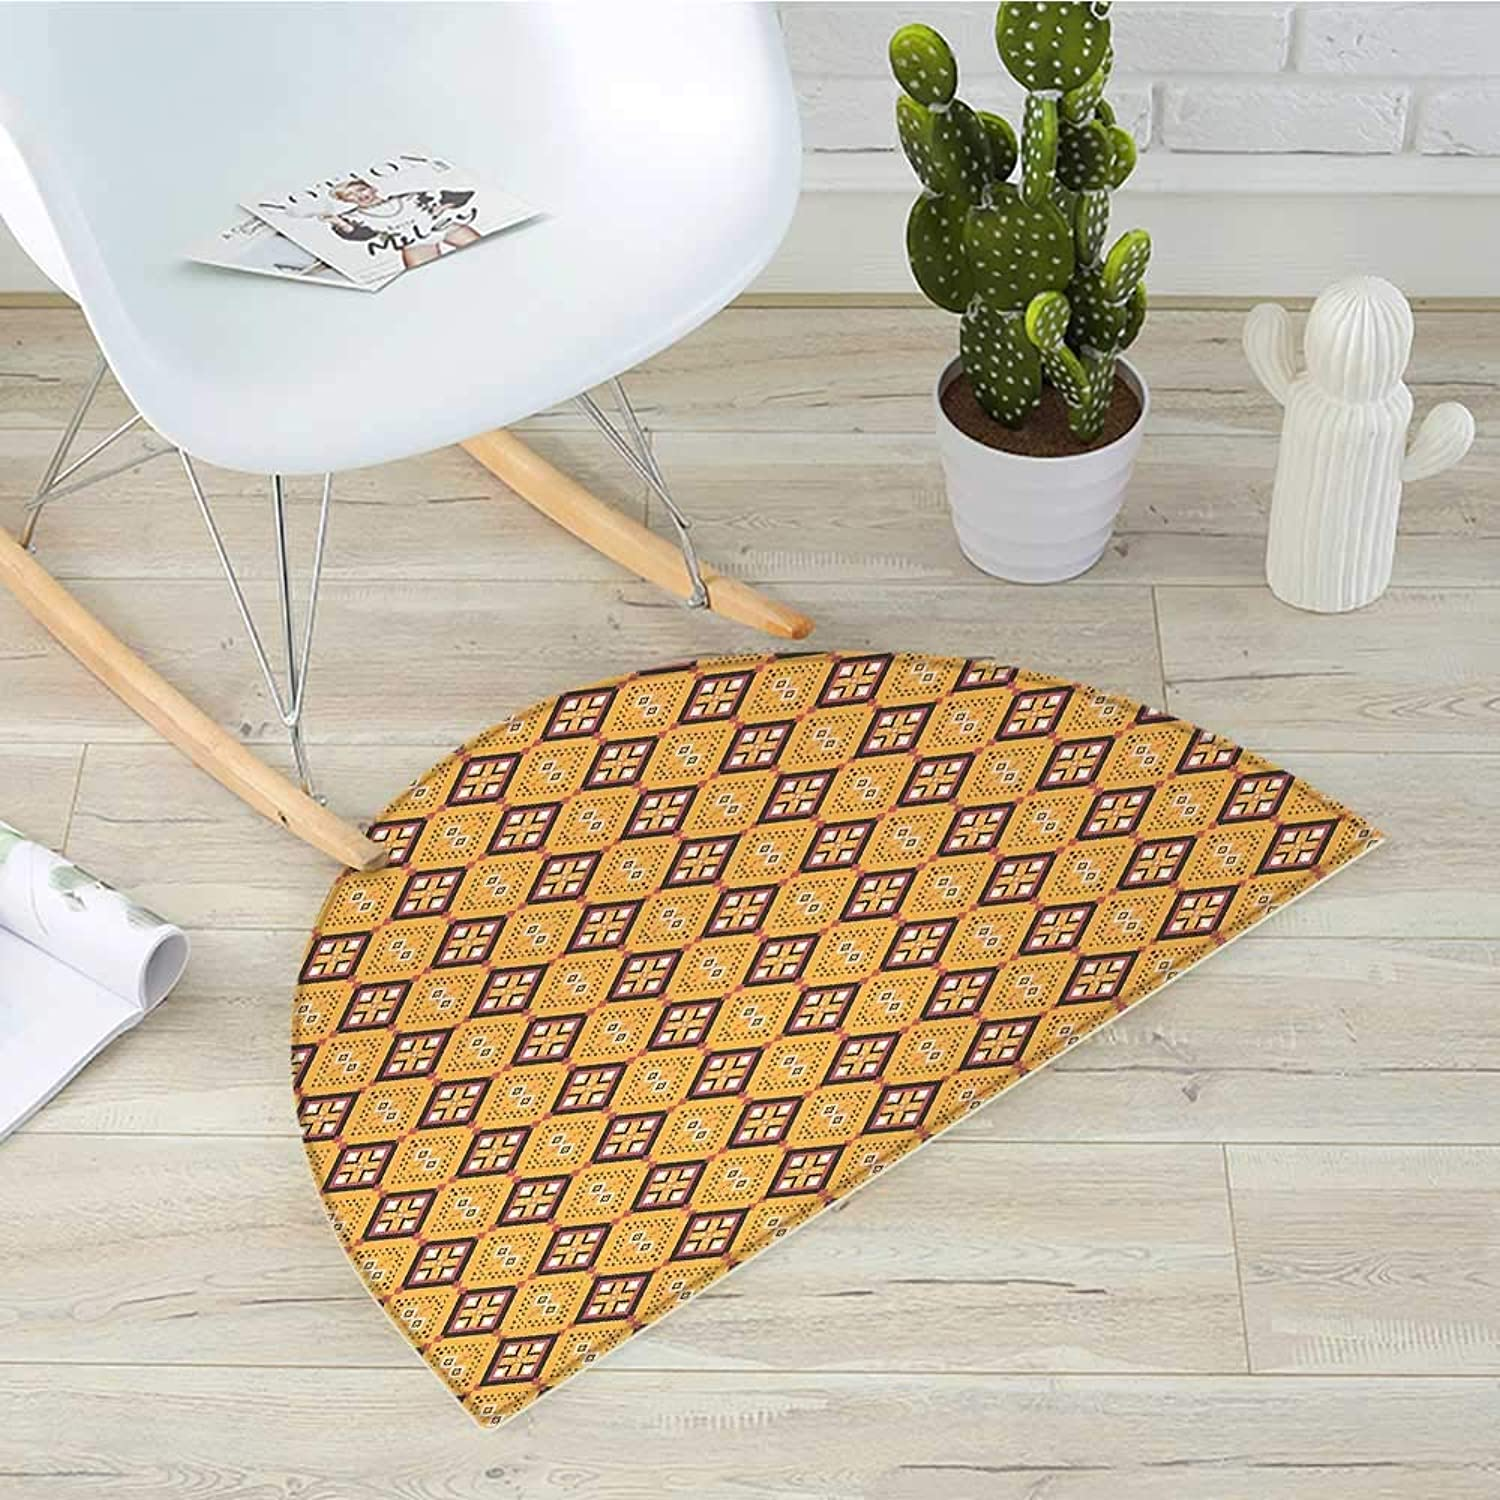 African Semicircular CushionTribal Tile Pattern with Diamond Line Motifs Ancient Cultures Entry Door Mat H 39.3  xD 59  Mustard Dried pink Charcoal Grey